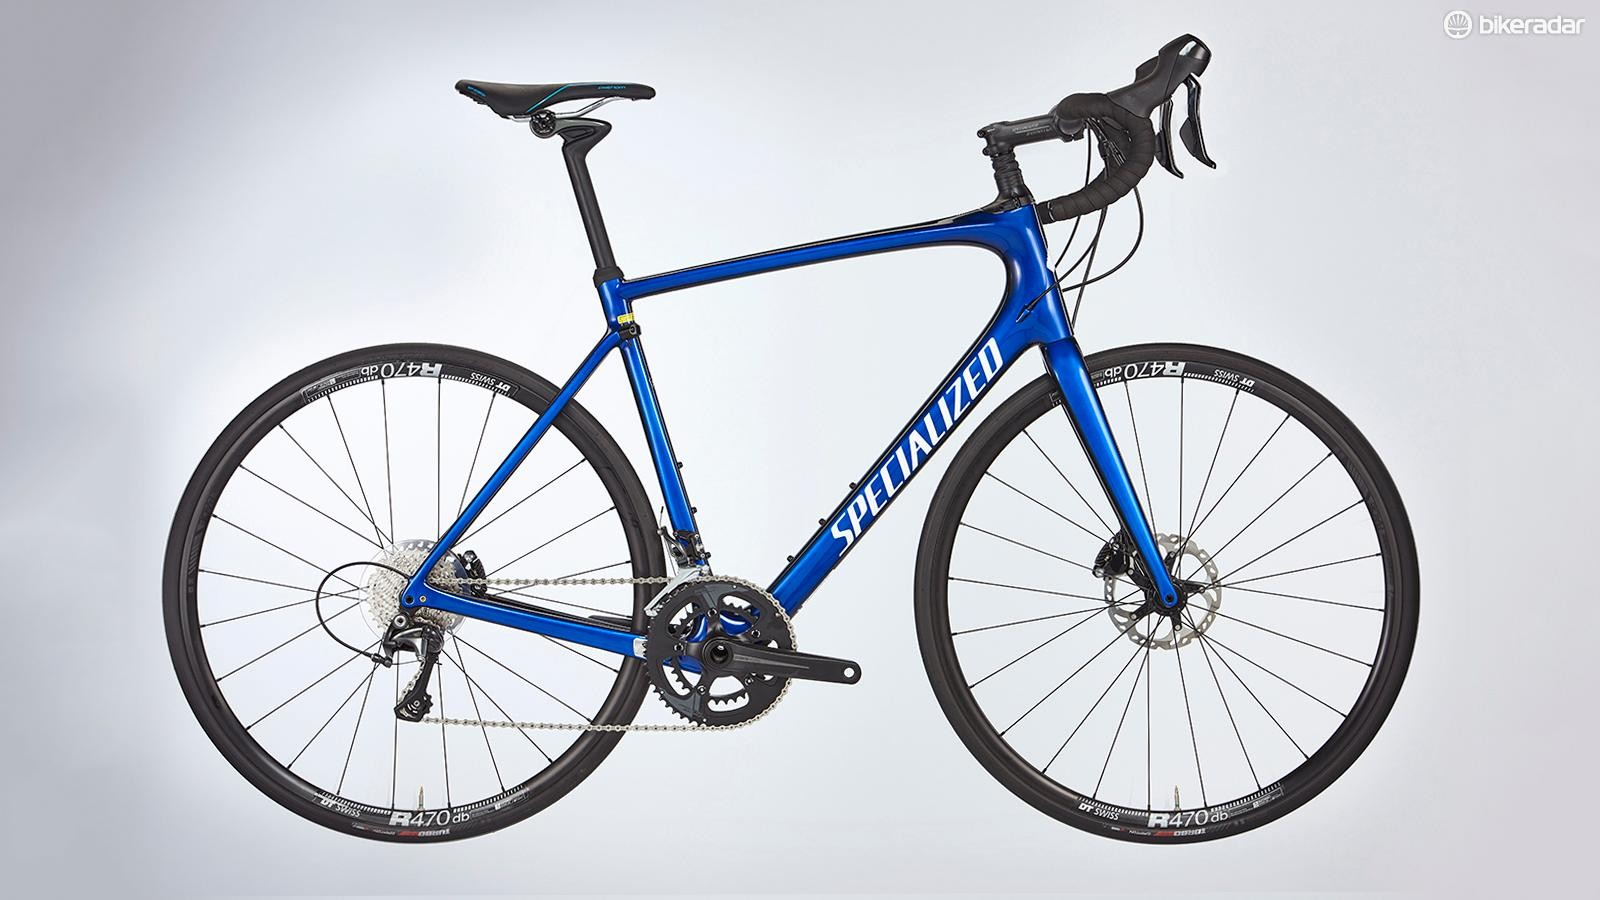 The Specialized Roubaix is built for big miles